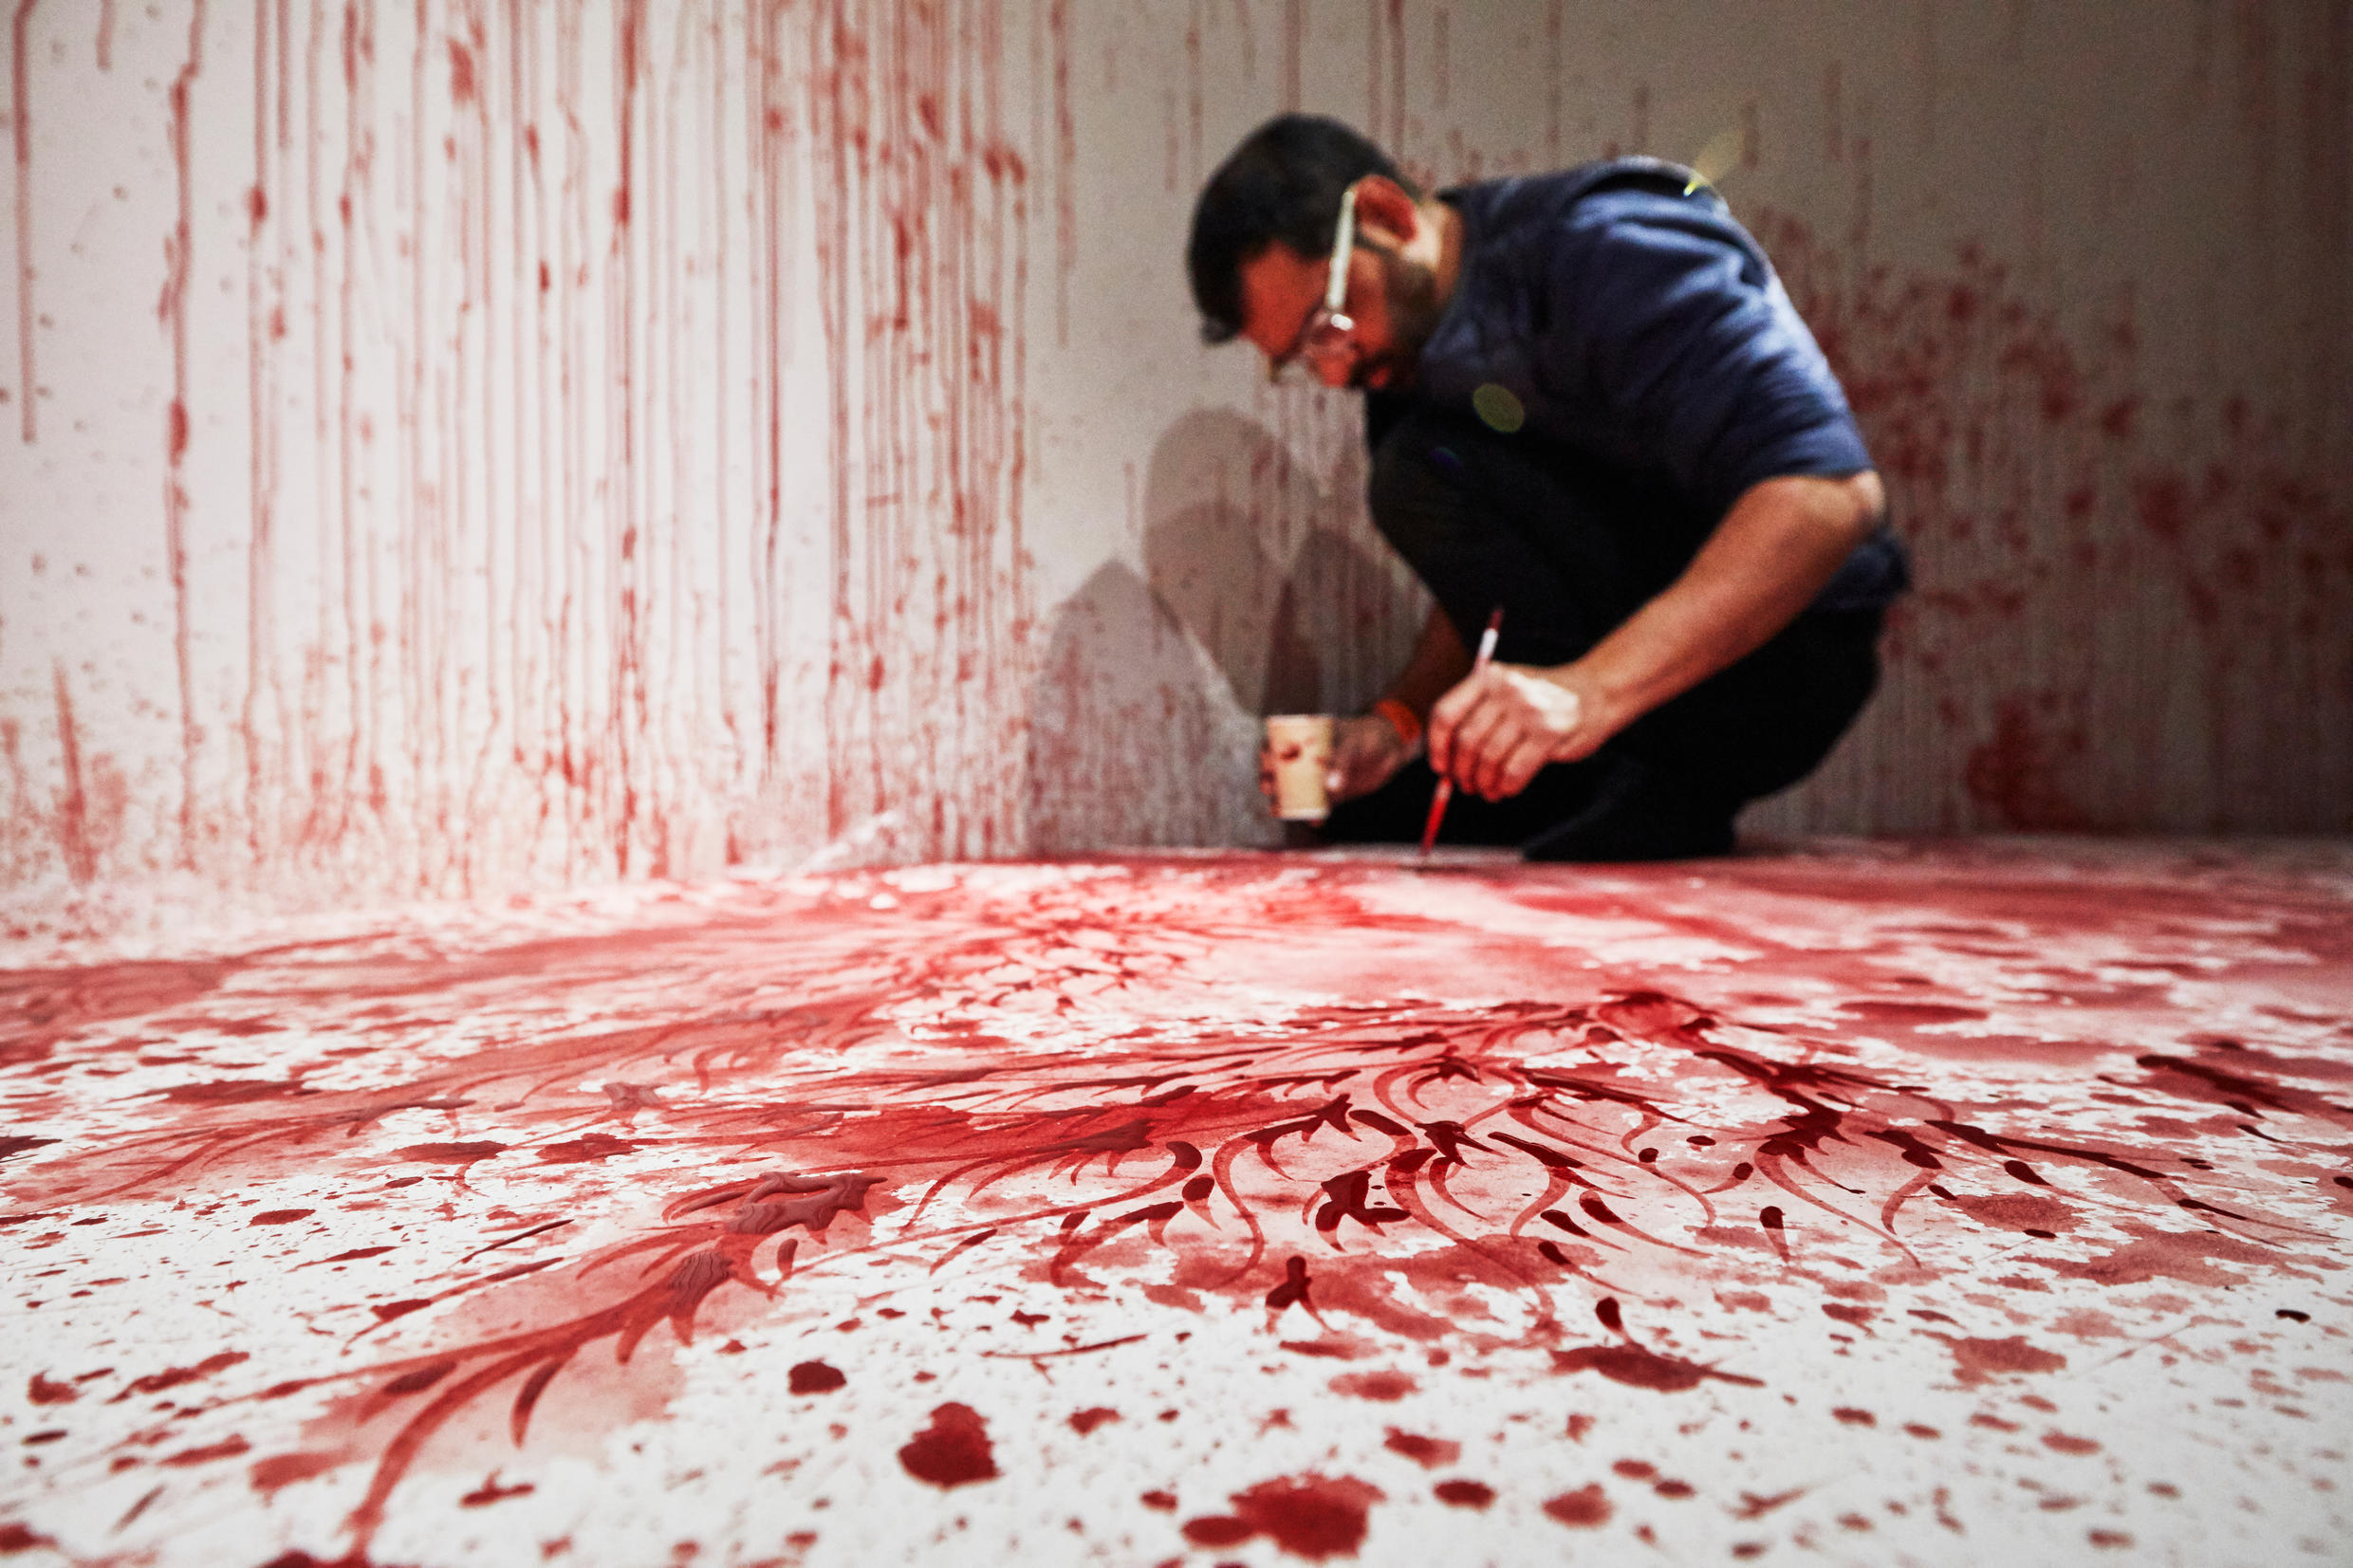 """Pakistani artist Imran Qureshi at work on """"This too will end,if you go on a step or two,"""" an installation at the Louboutin retrospective."""